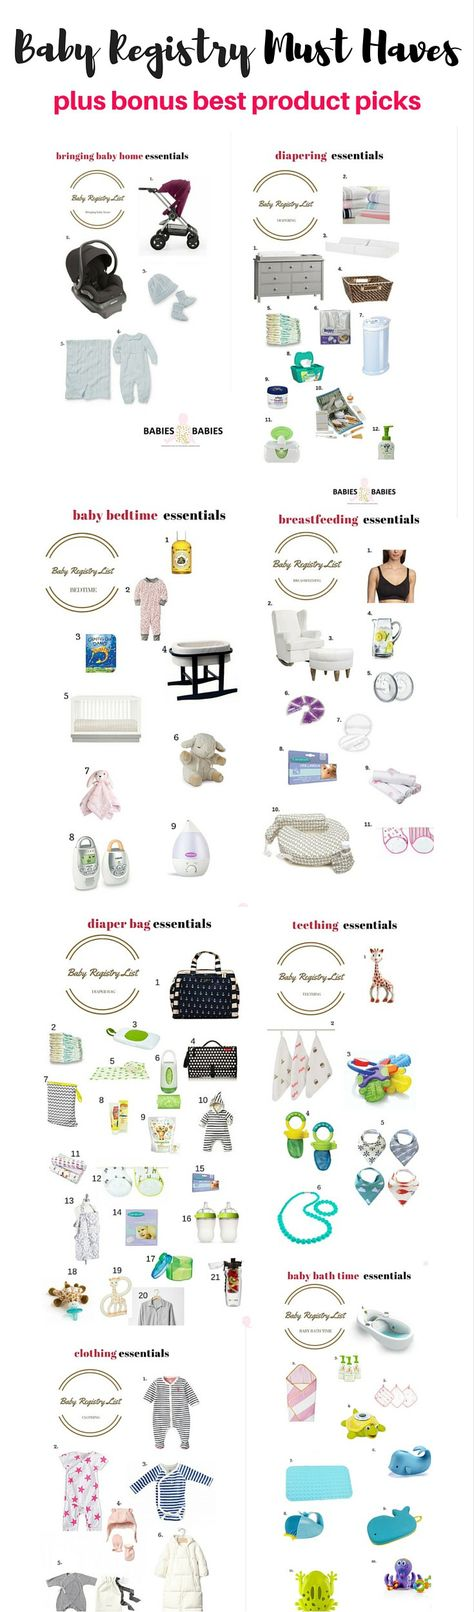 Baby Registry List Baby registry, Babies and Detail - baby registry checklists